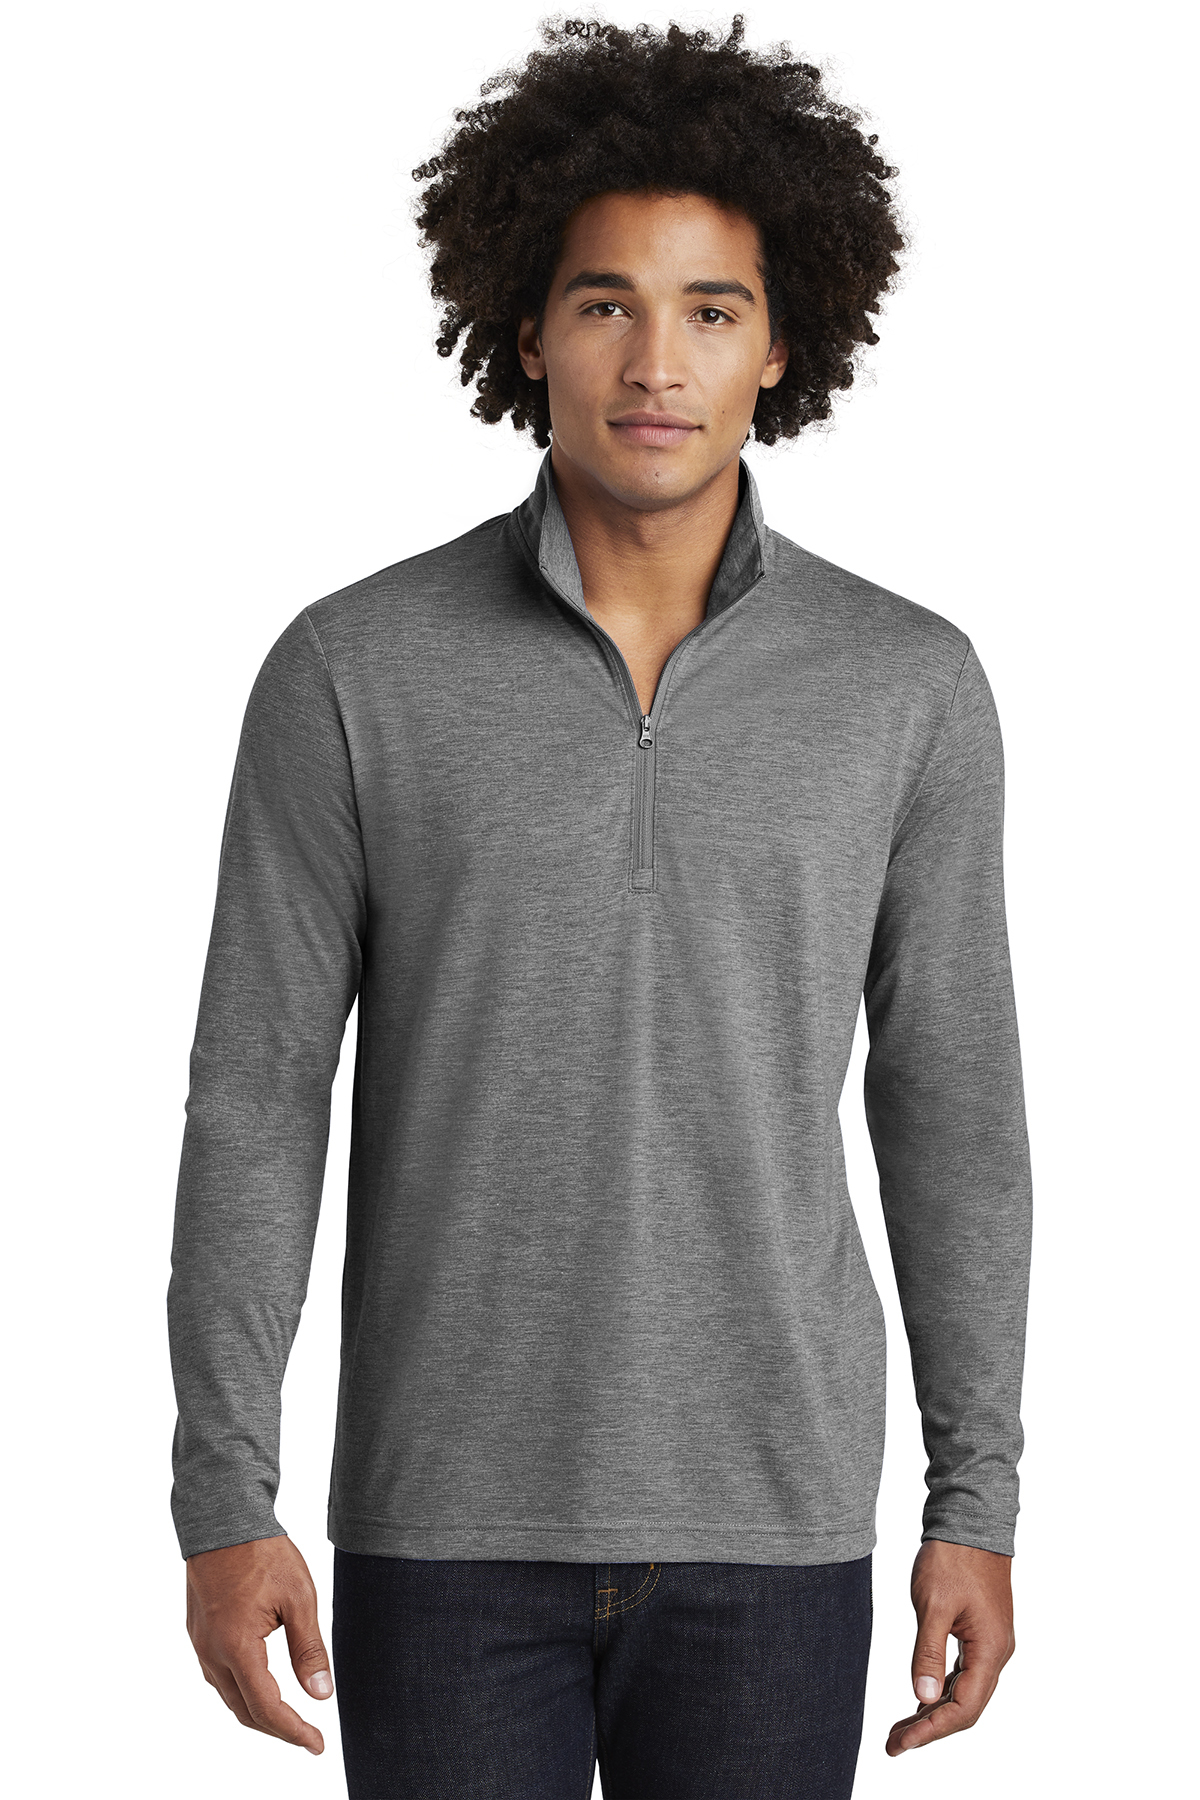 Sport Tek Posicharge Tri Blend Wicking 1 4 Zip Pullover 1 2 1 4 Zip Sweatshirts Fleece Sport Tek Posicharge technology helps colors and logos stay vibrant longer. sport tek posicharge tri blend wicking 1 4 zip pullover 1 2 1 4 zip sweatshirts fleece sport tek